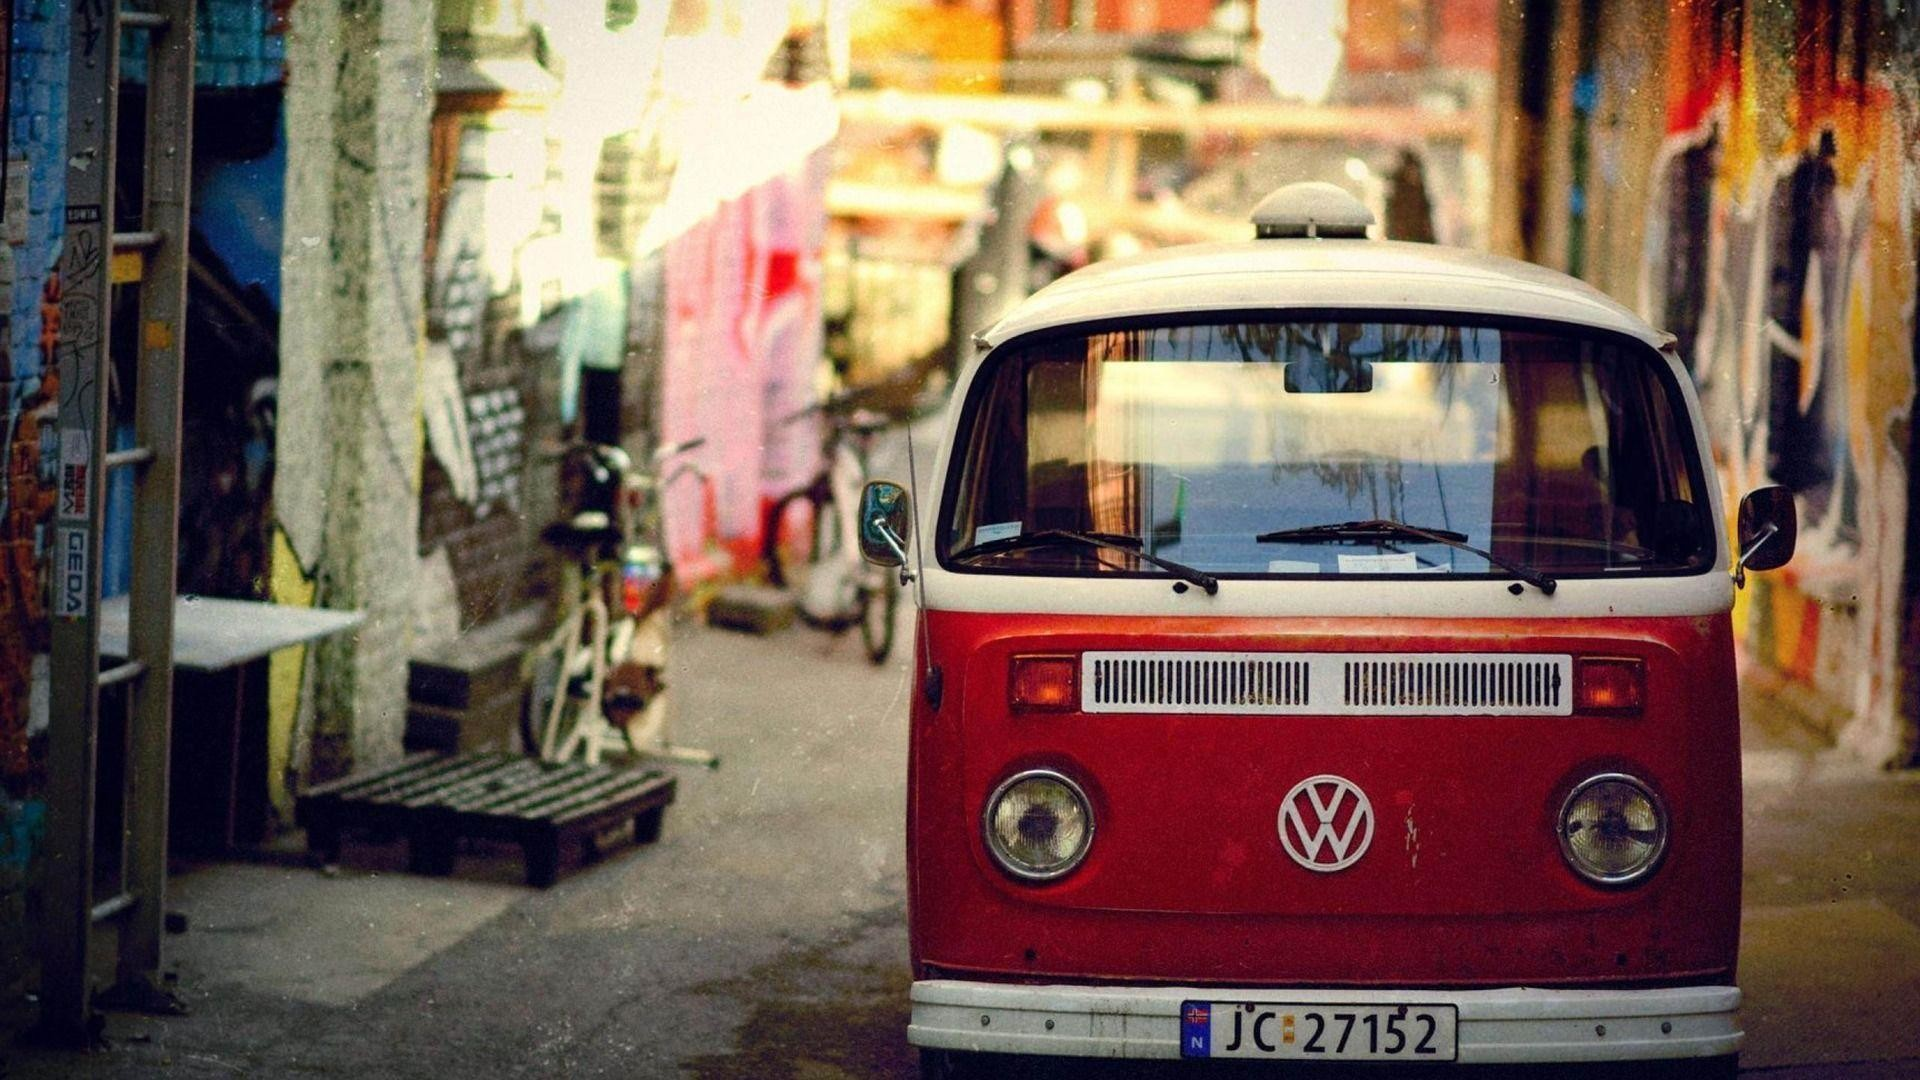 Old Red VW Bus Wallpaper Photos #10275 Wallpaper | Wallpaper .